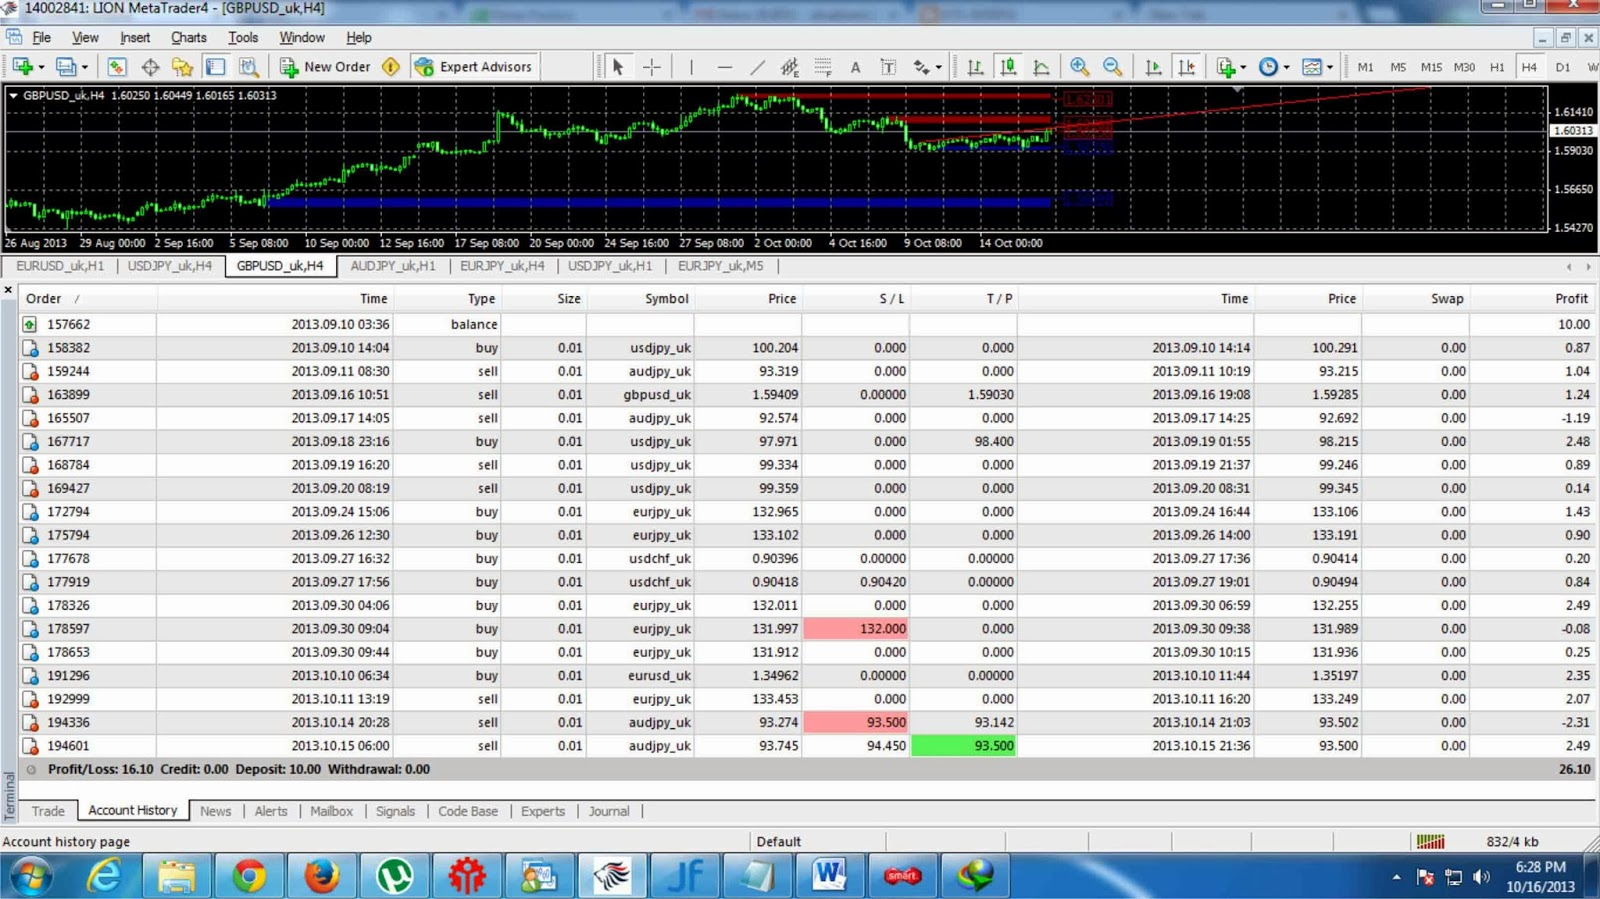 No deposit forex brokers 2013